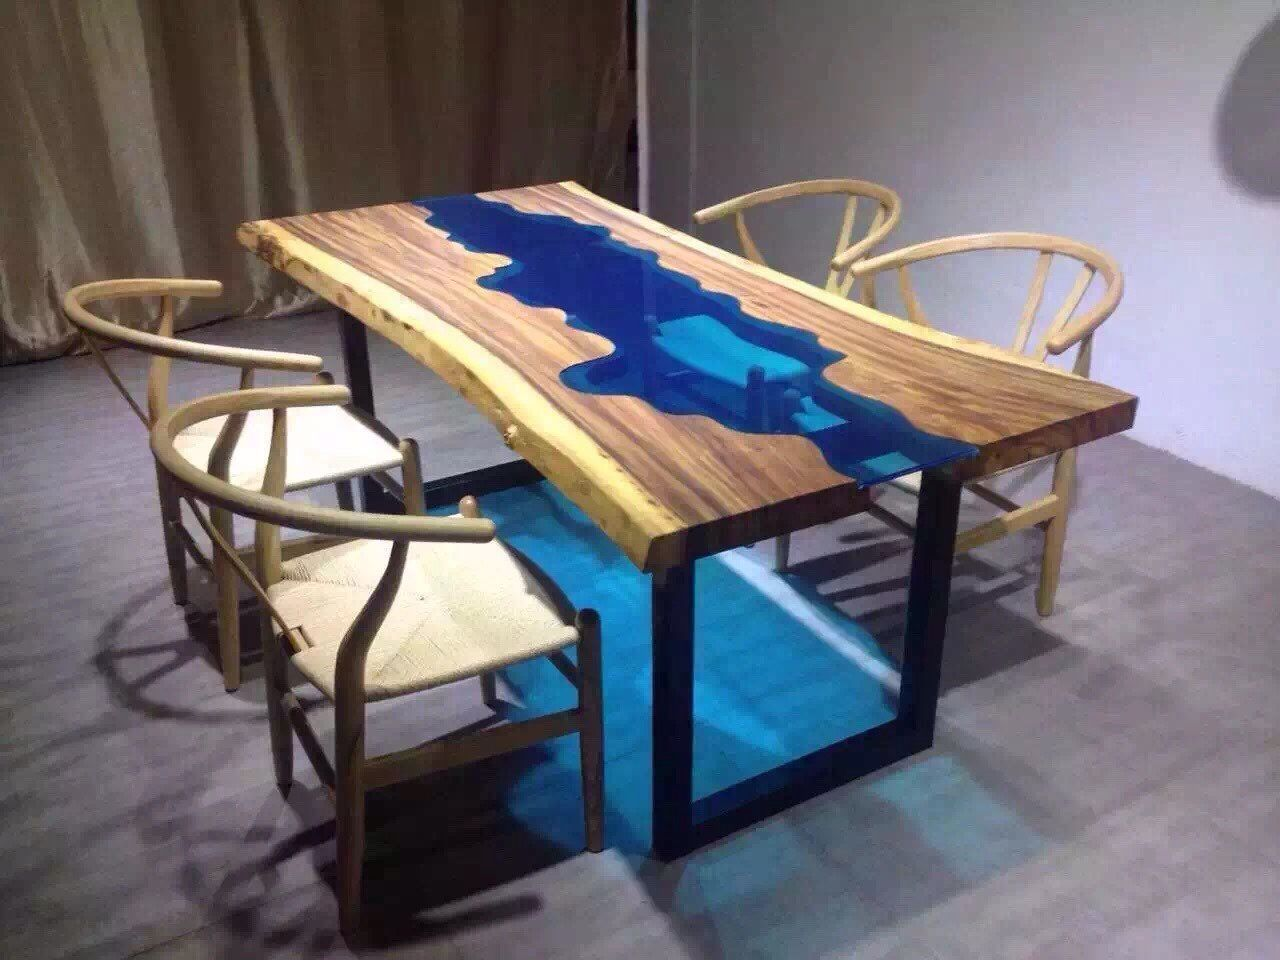 Glass Dining Table custom made acacia live edge river wood and glass dining table